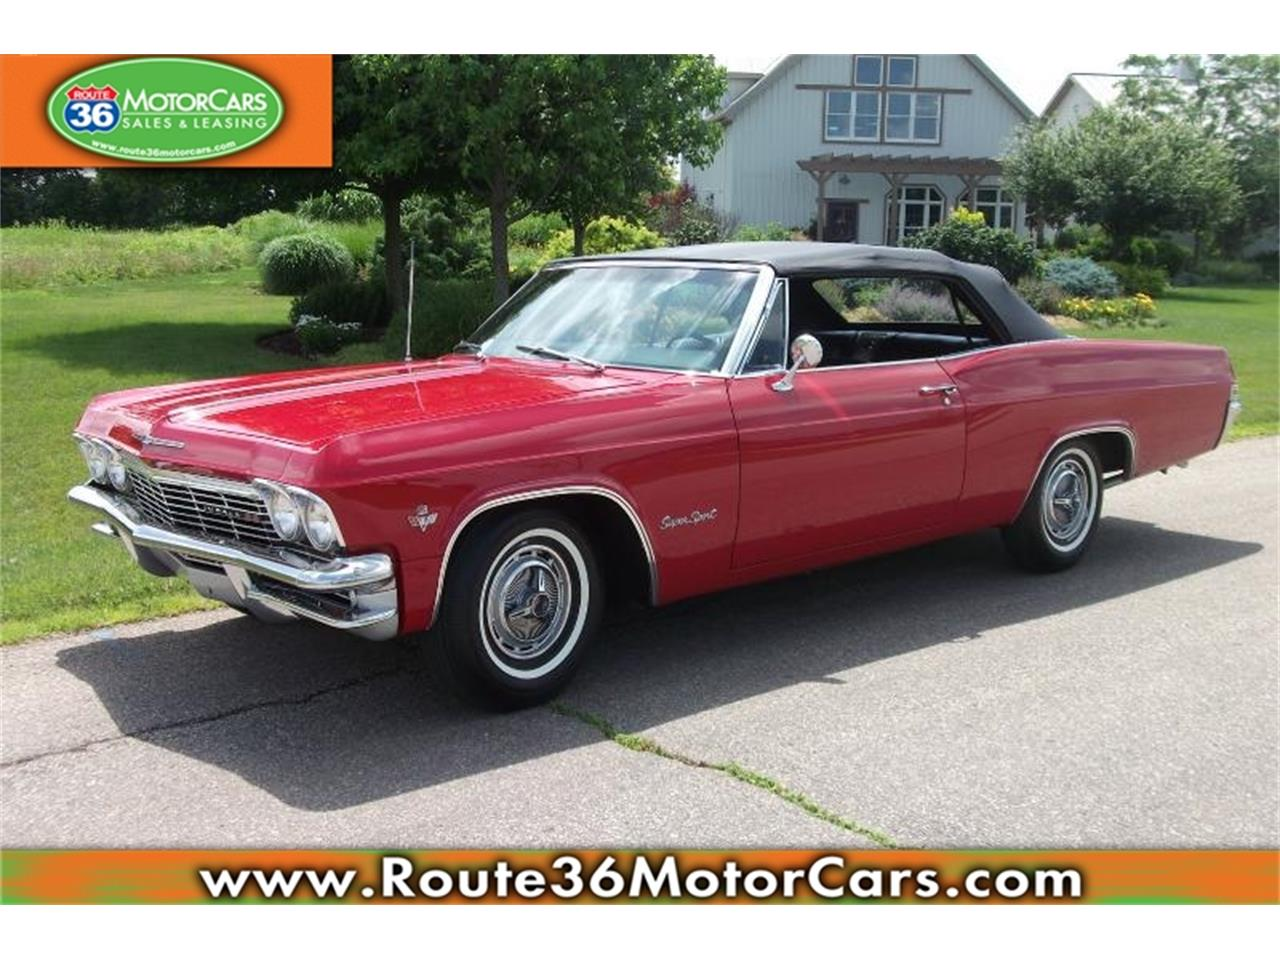 Large Picture of Classic '65 Impala SS - $84,475.00 Offered by Route 36 Motor Cars - IKGZ